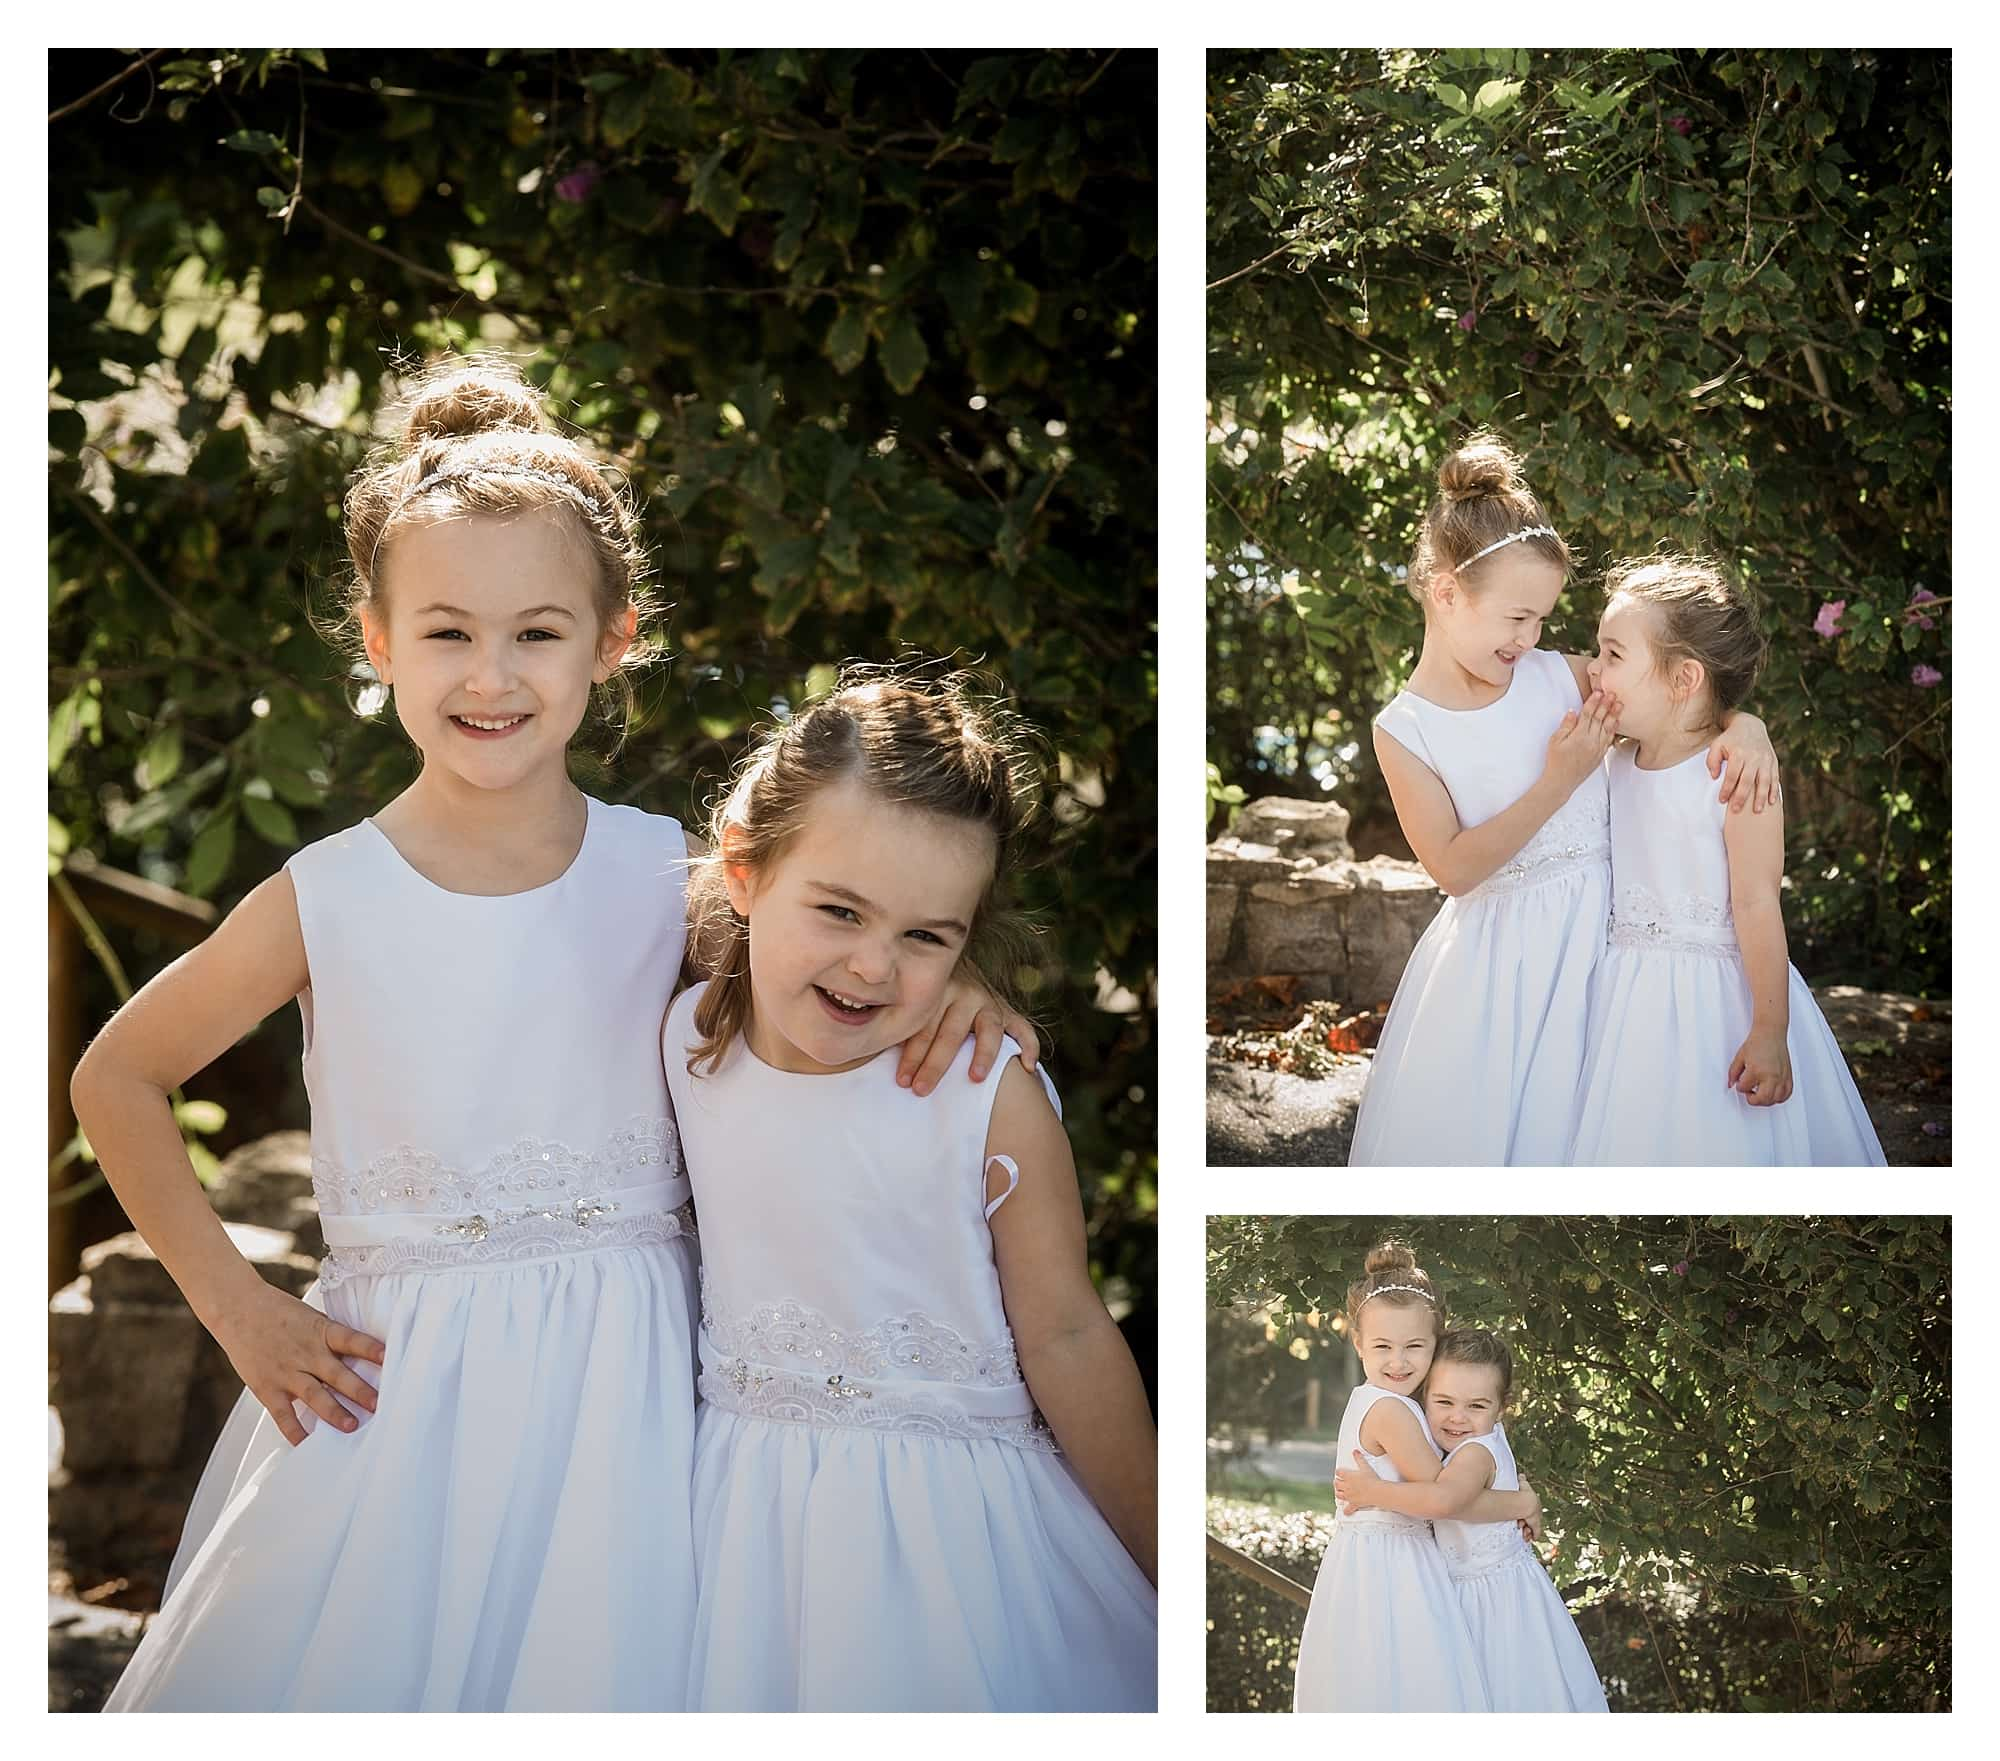 Adorable sister flower girls photographs by Kathy Beaver